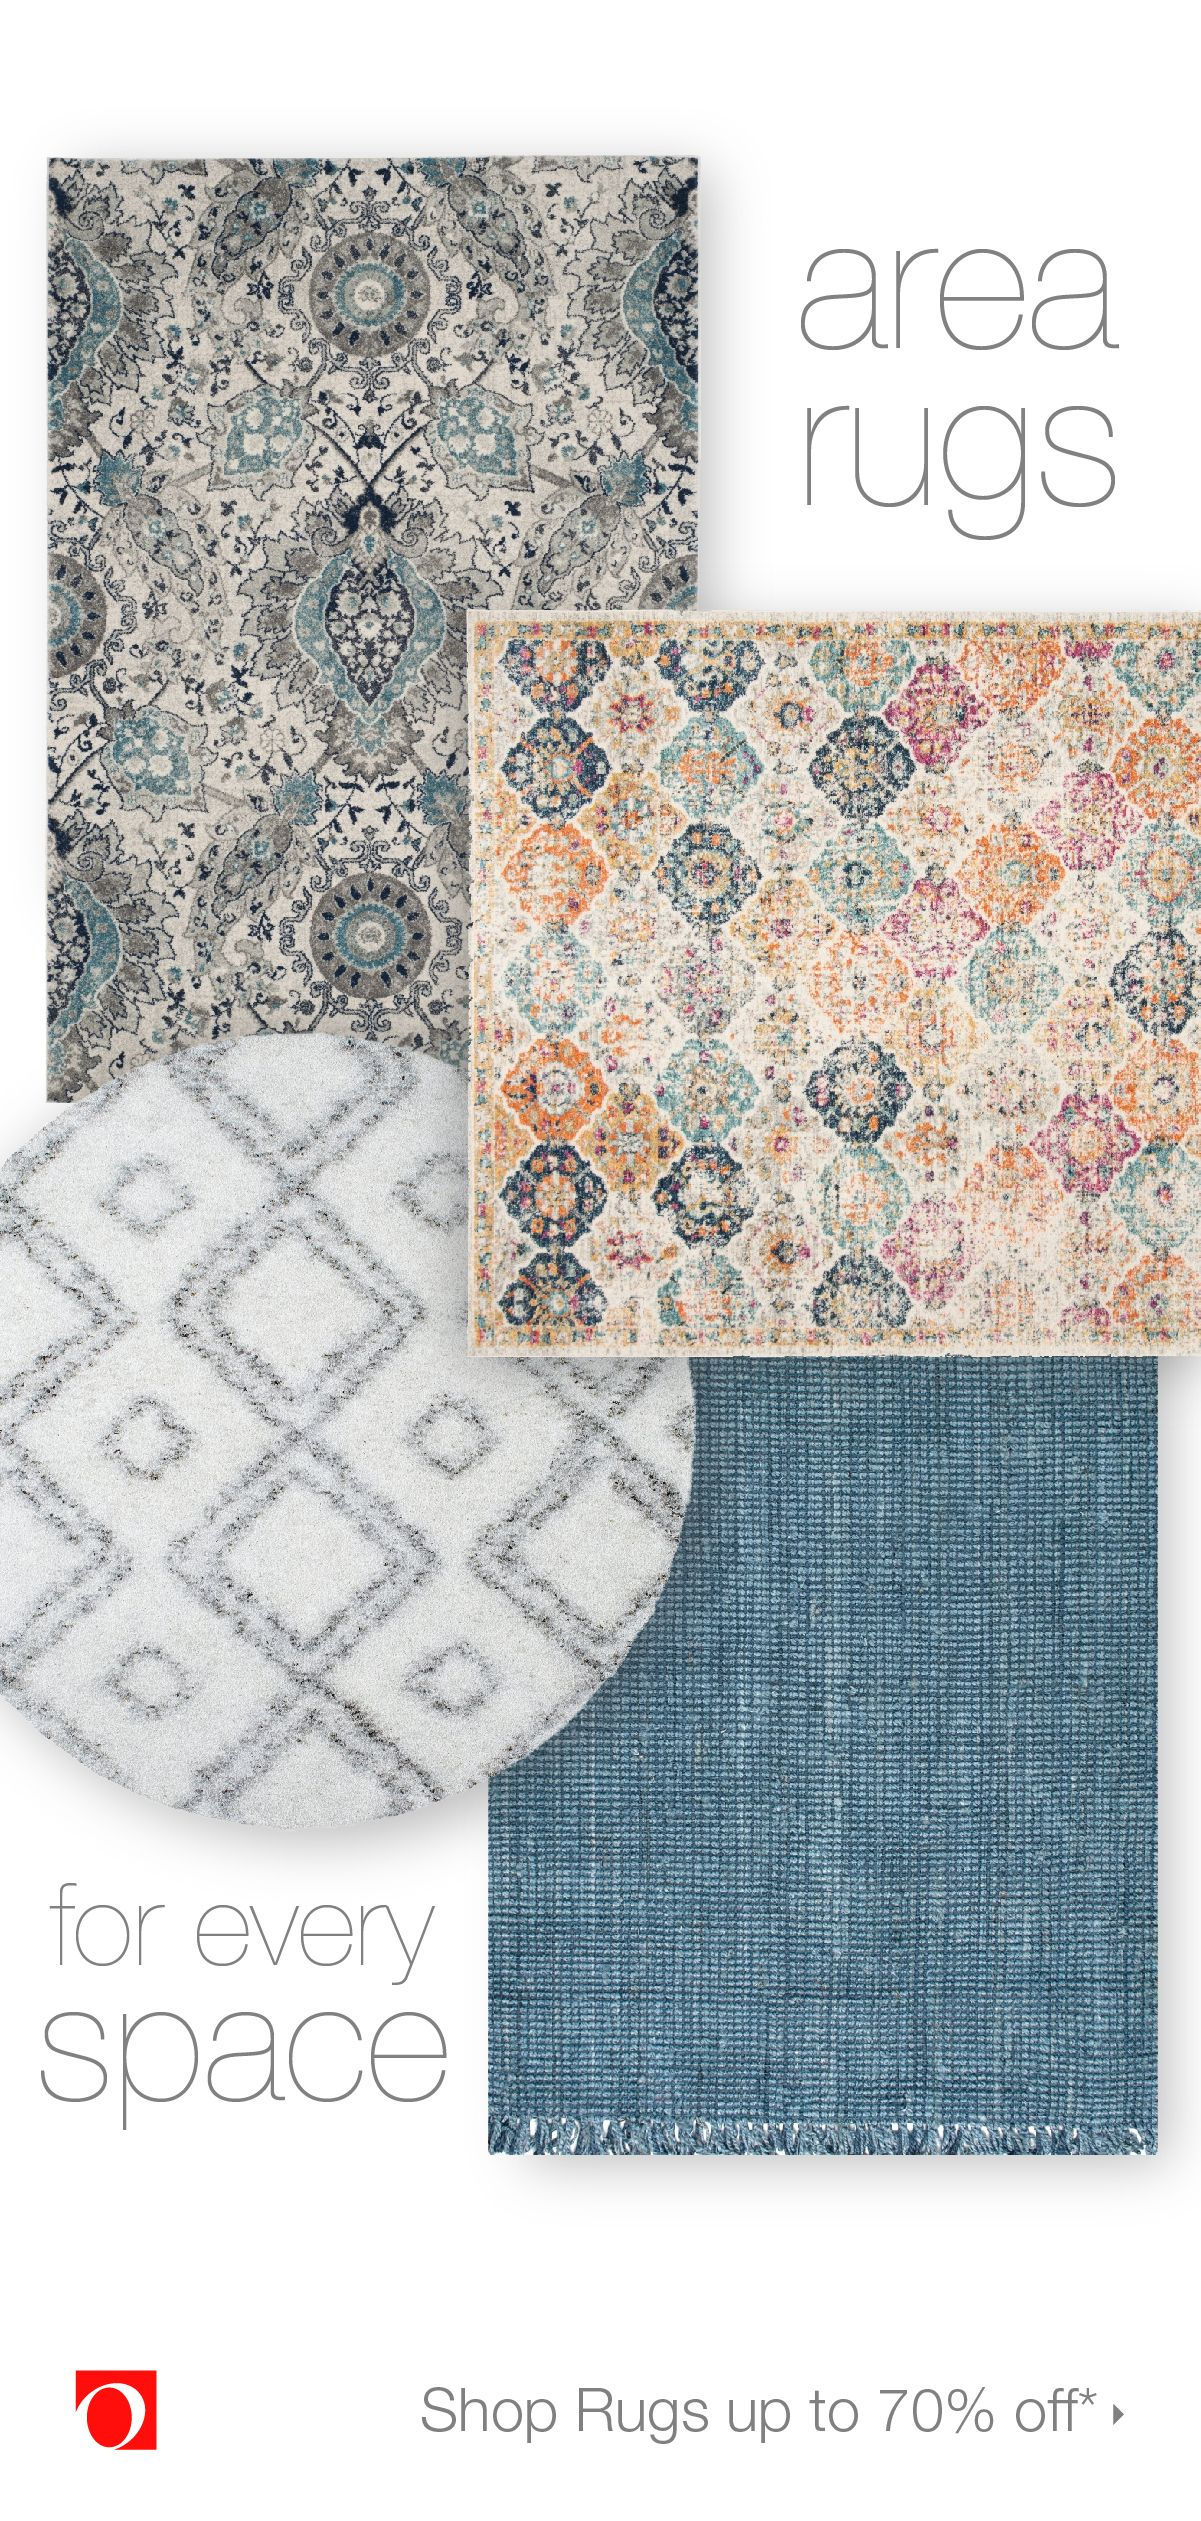 The Complete Guide to Choosing an Area Rug | Home room ...